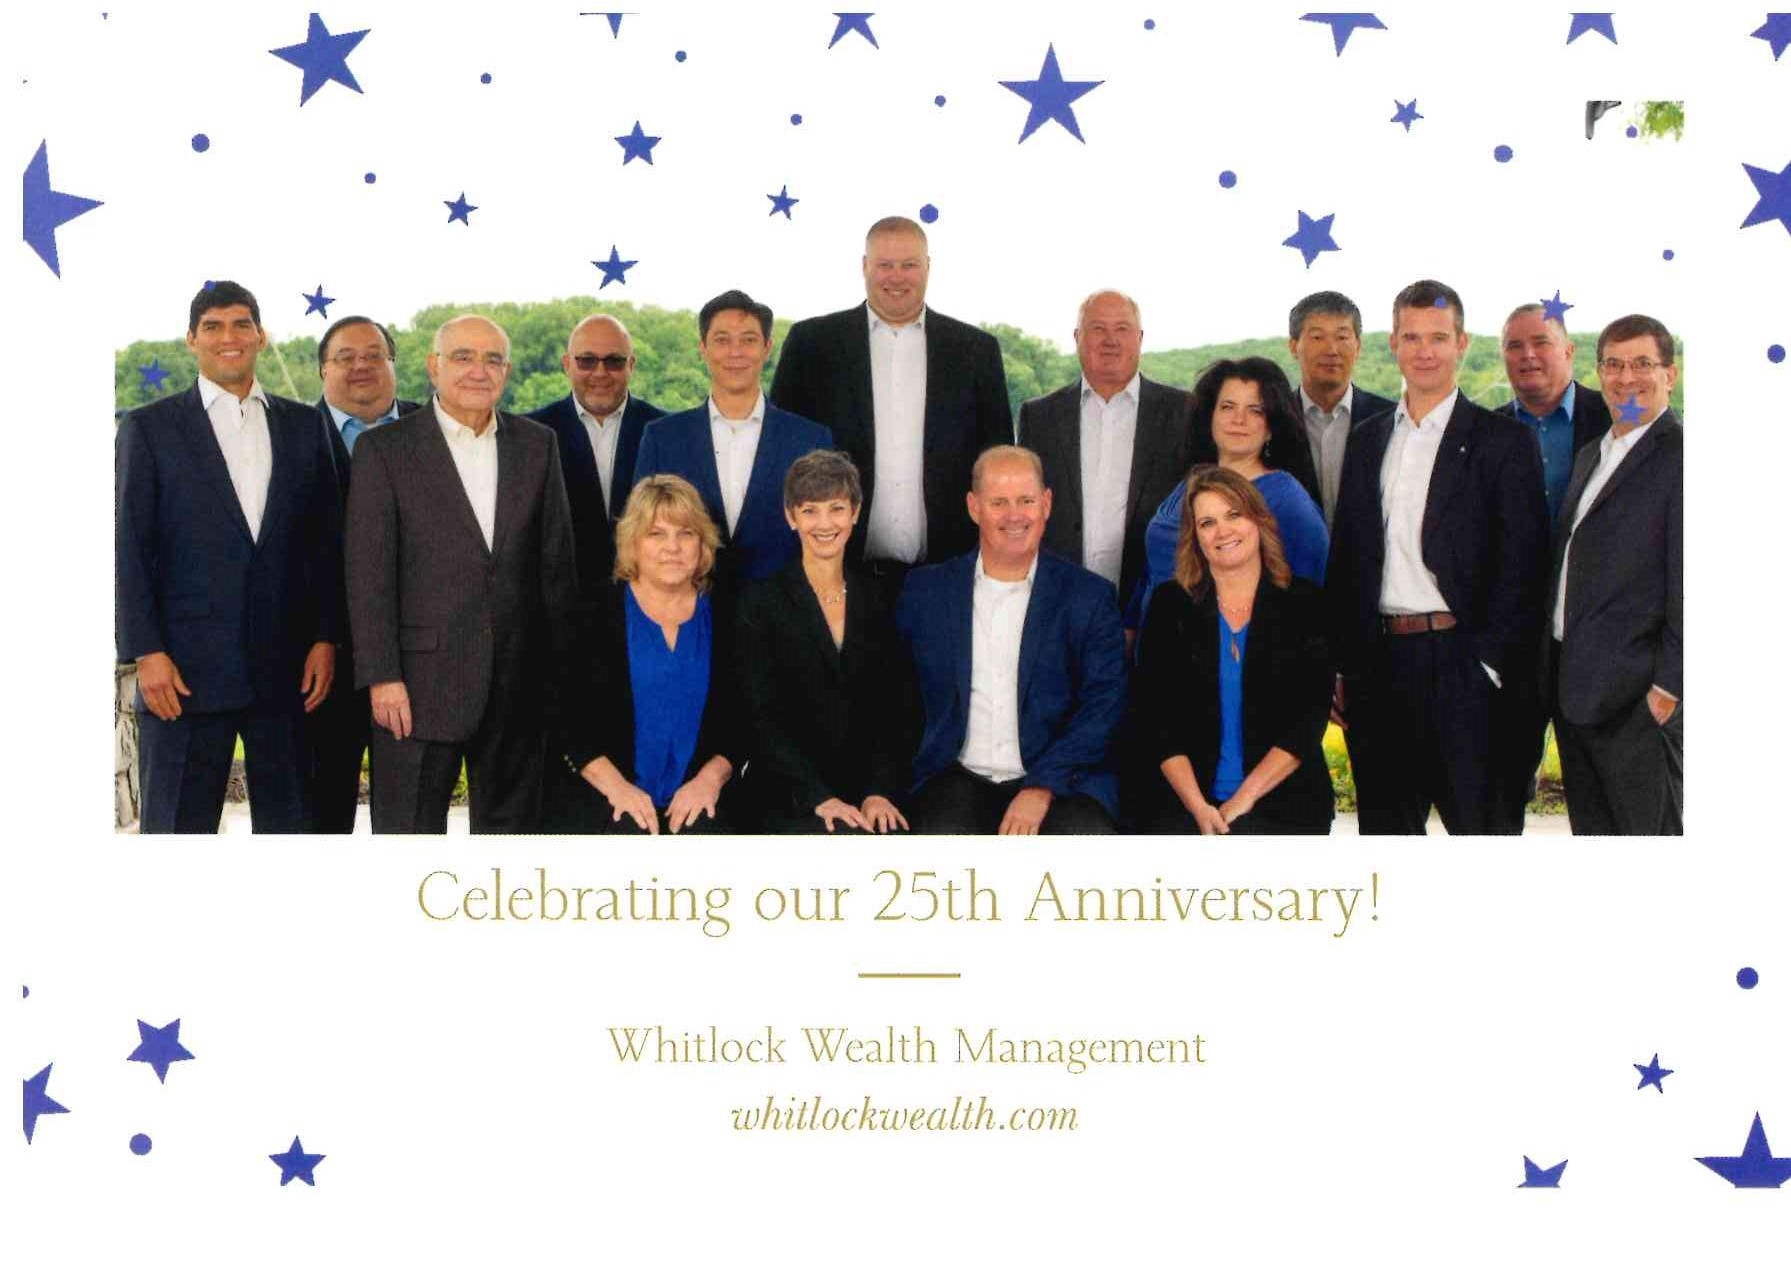 Whitlock Wealth 25th anniversary